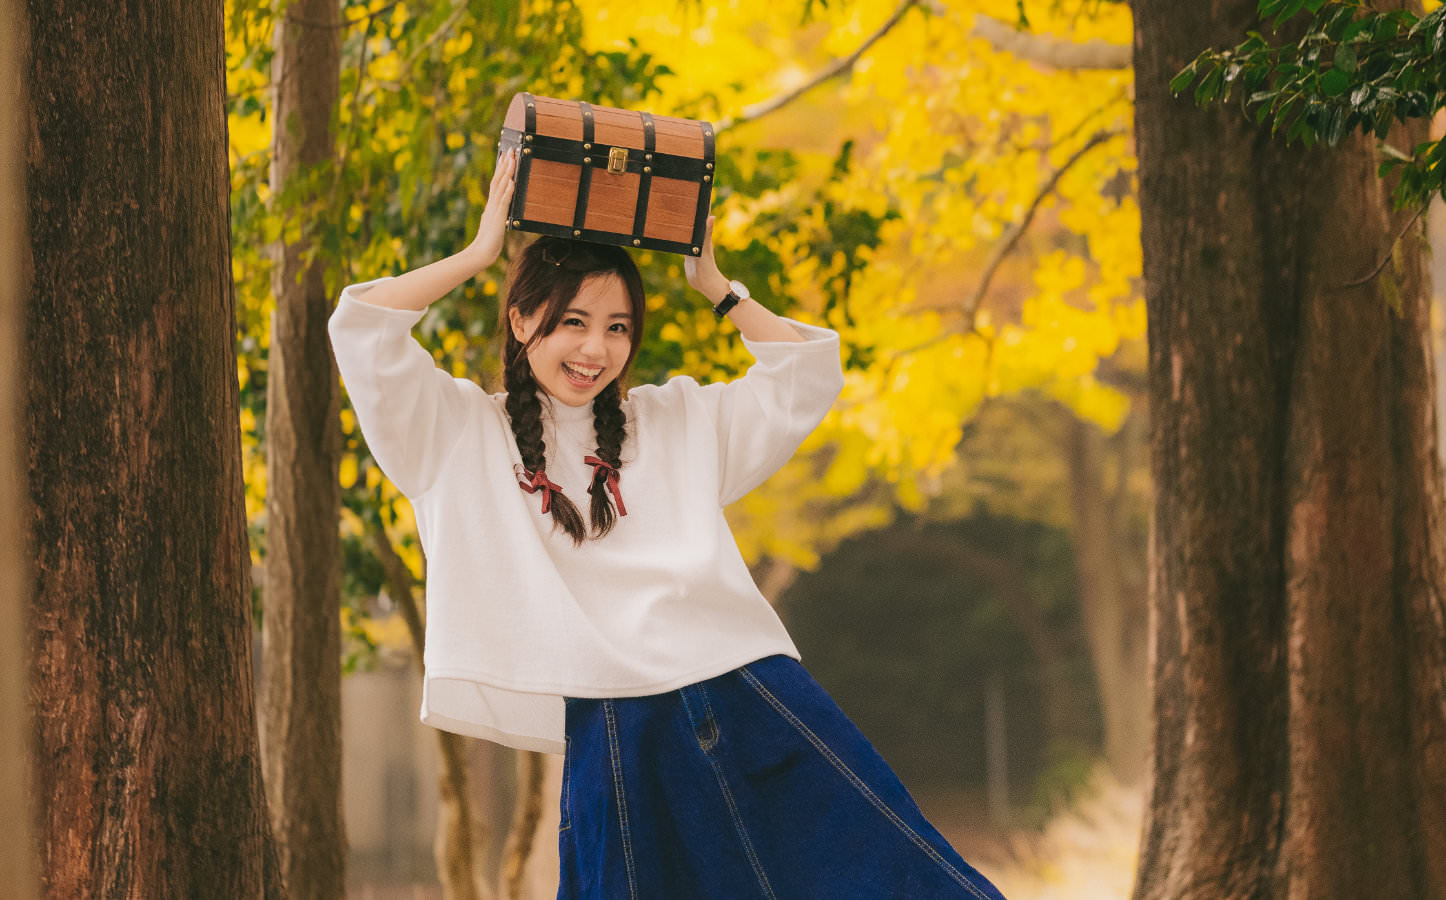 Yuka holding a box in the woods pakutaso